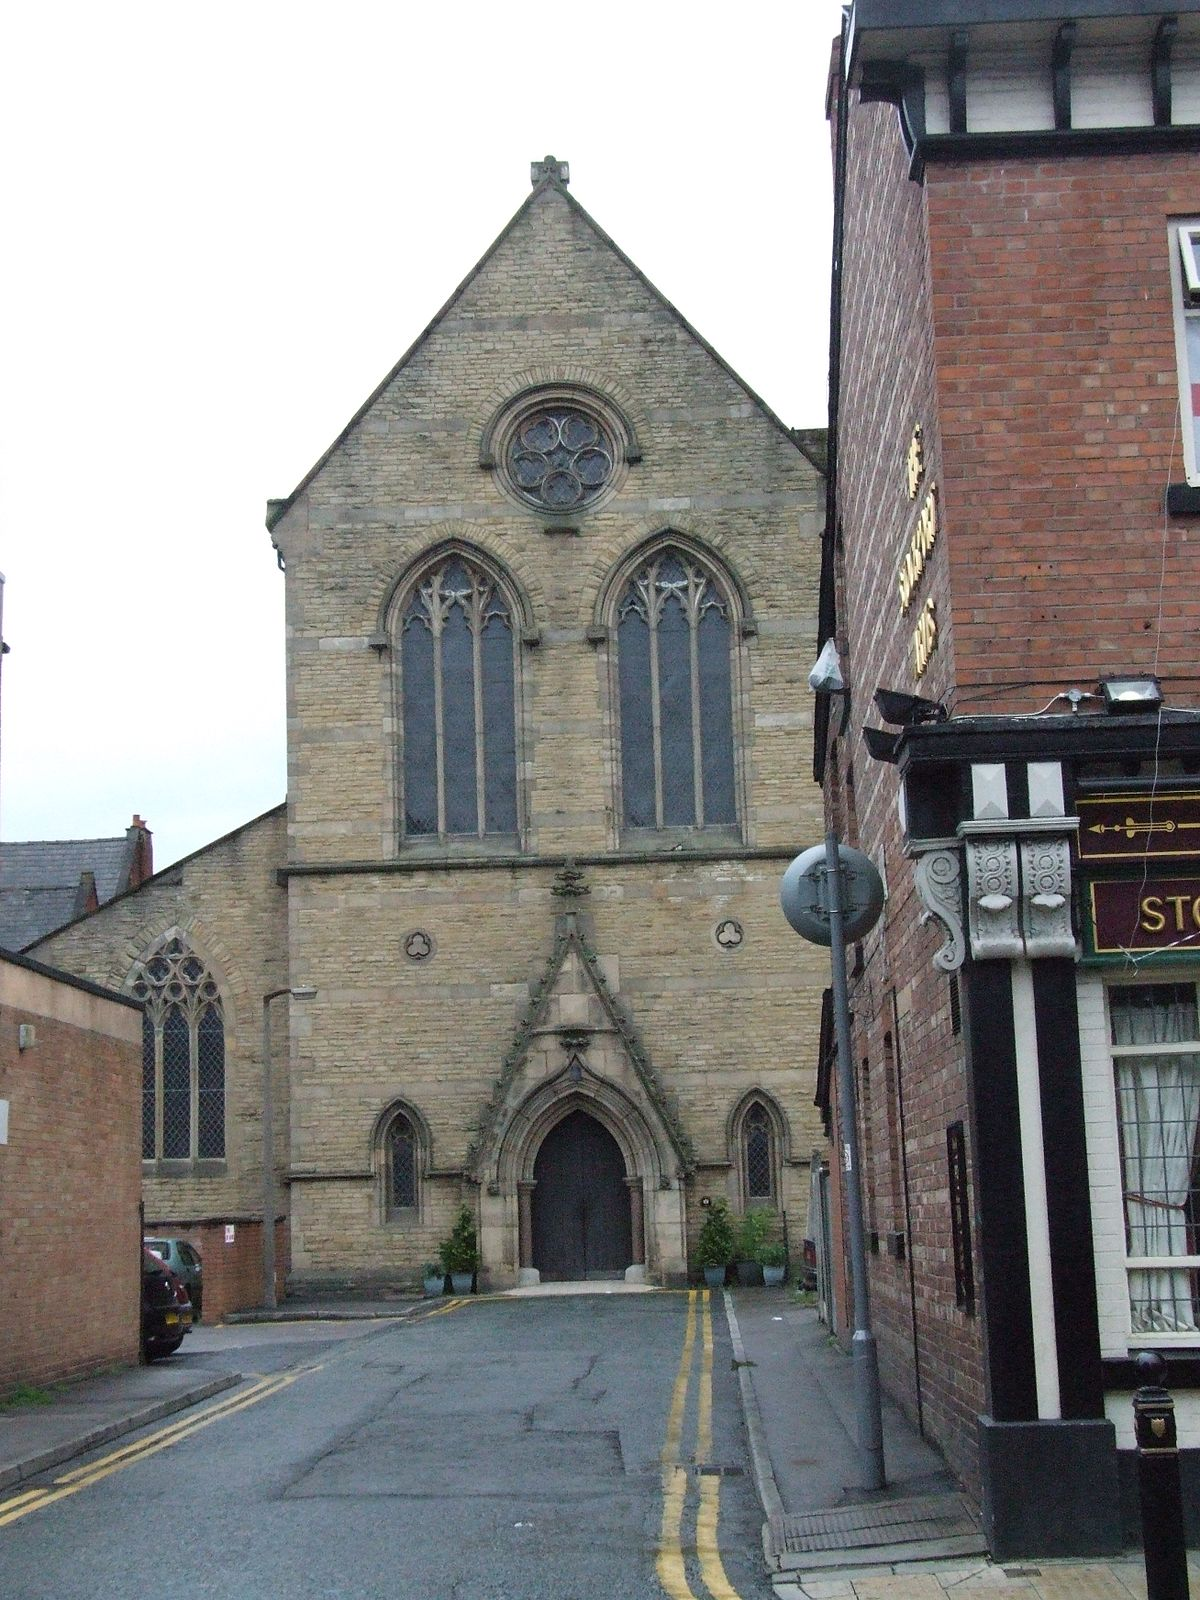 St Joseph's Church, Stockport - Wikipedia